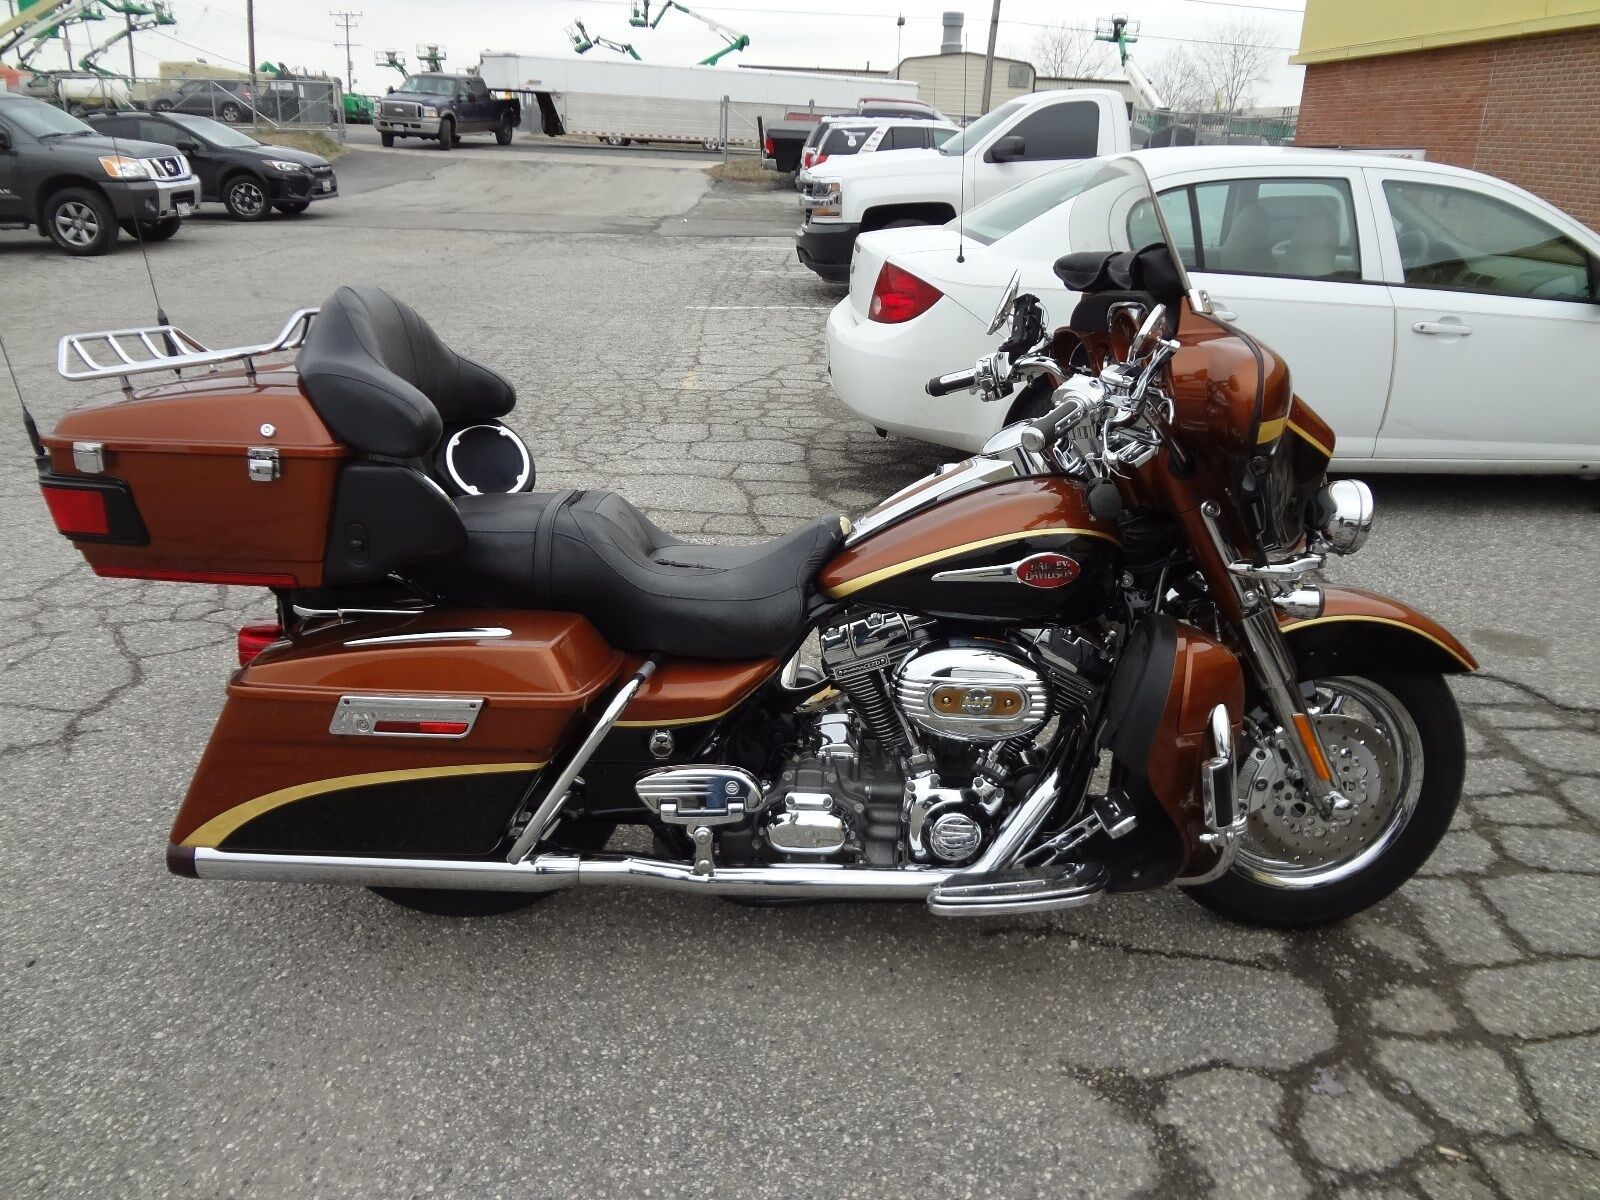 2008 HARLEY DAVIDSON CVO ULTRA CLASSIC WITH LOW MILES-